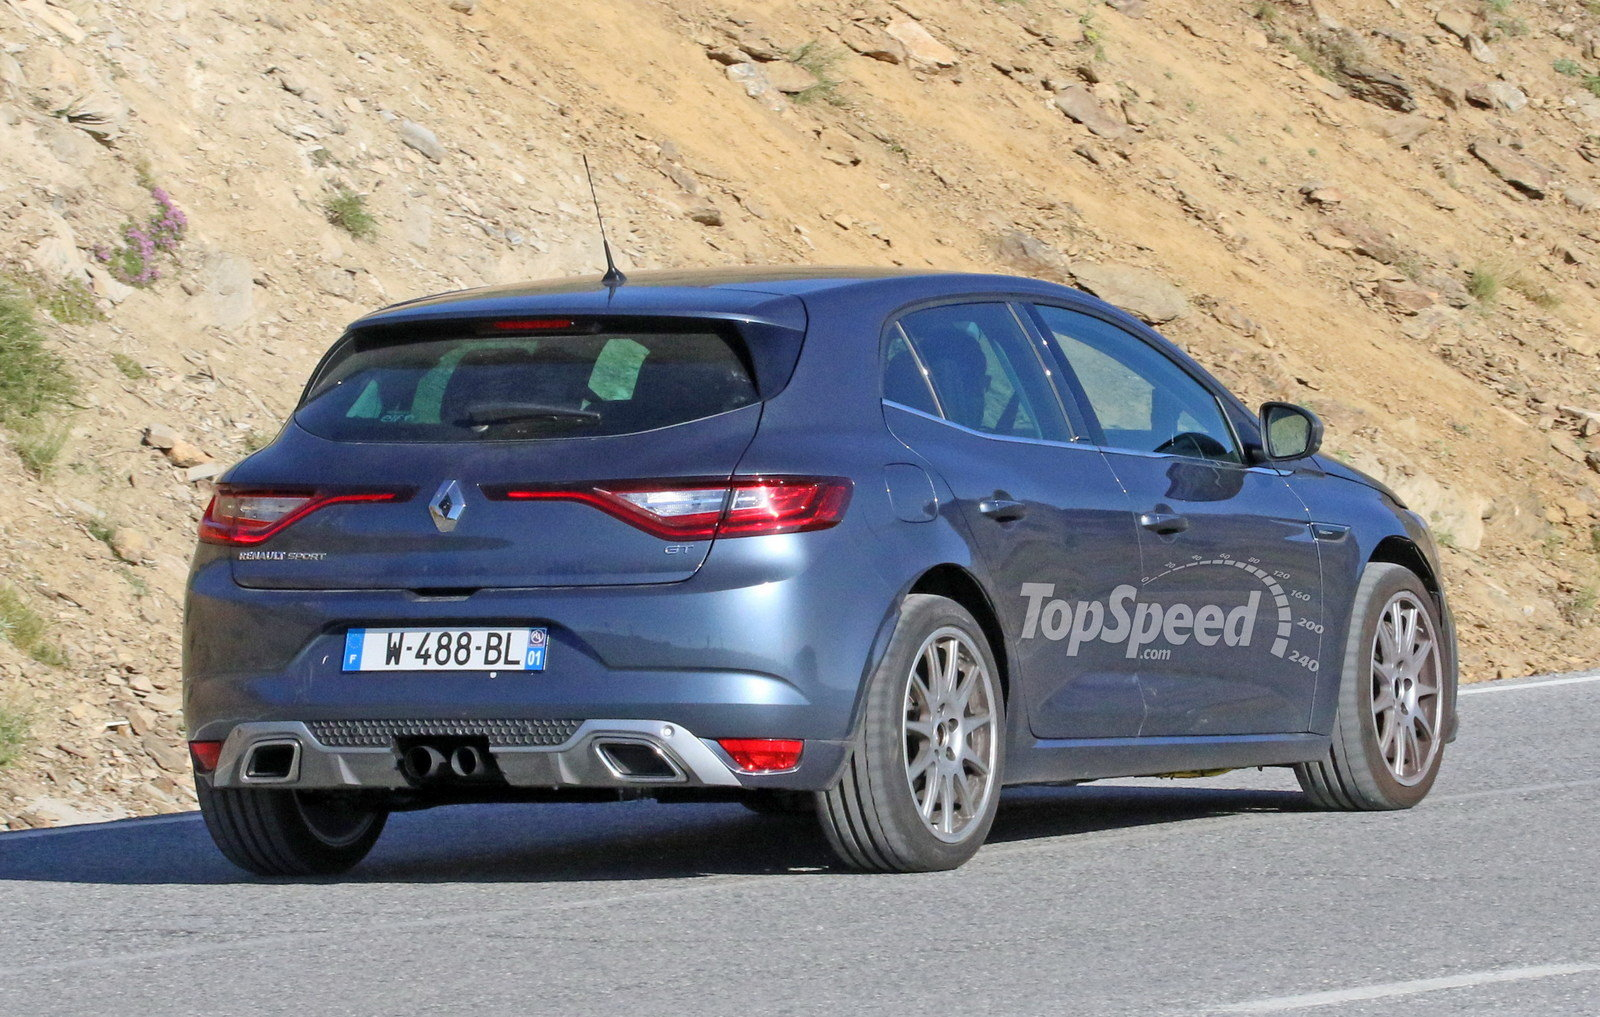 2018 Renault Megane Hatchback photo - 1